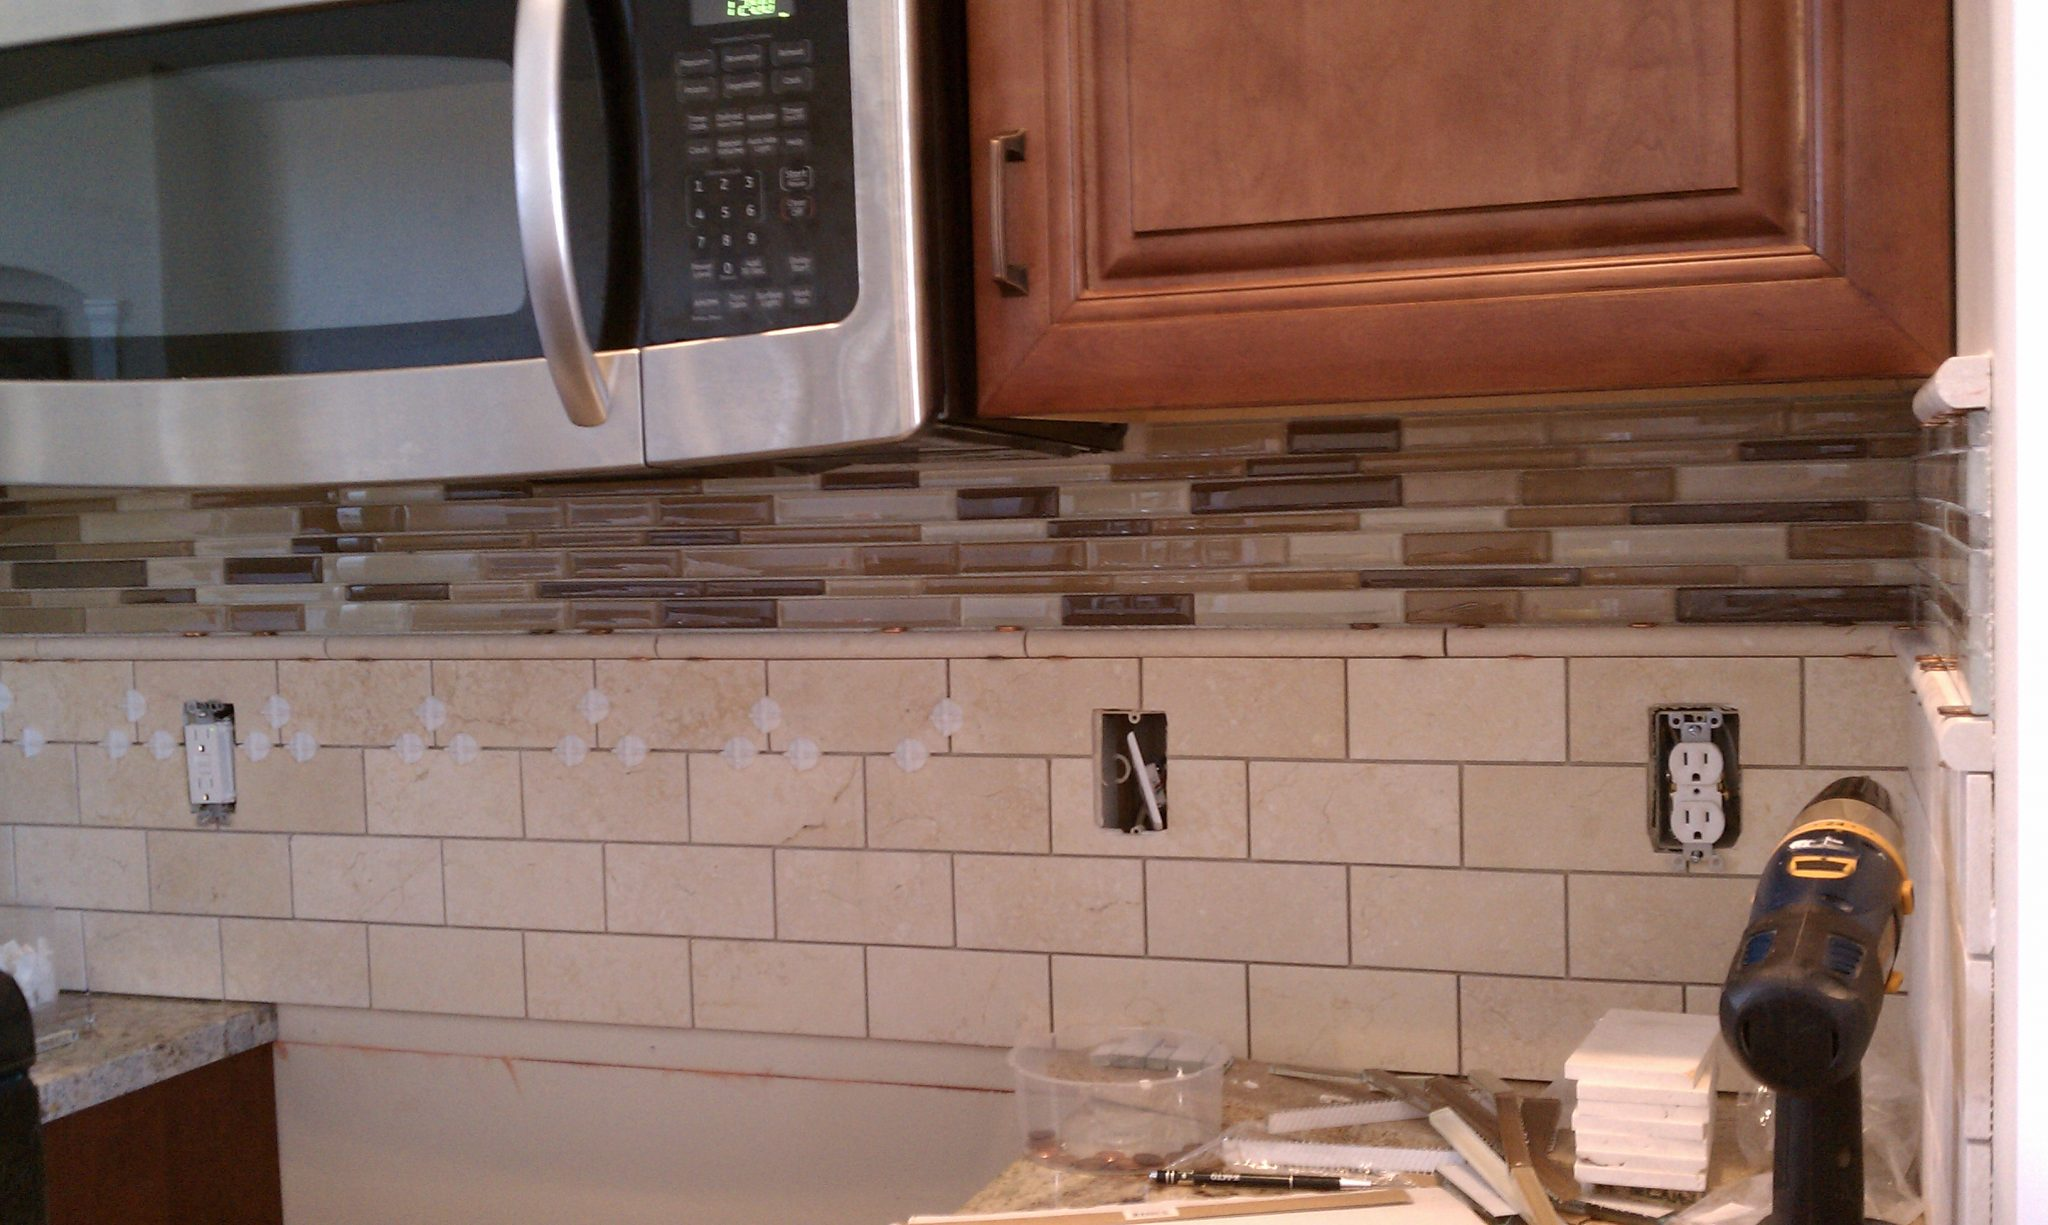 Removable tile backsplash